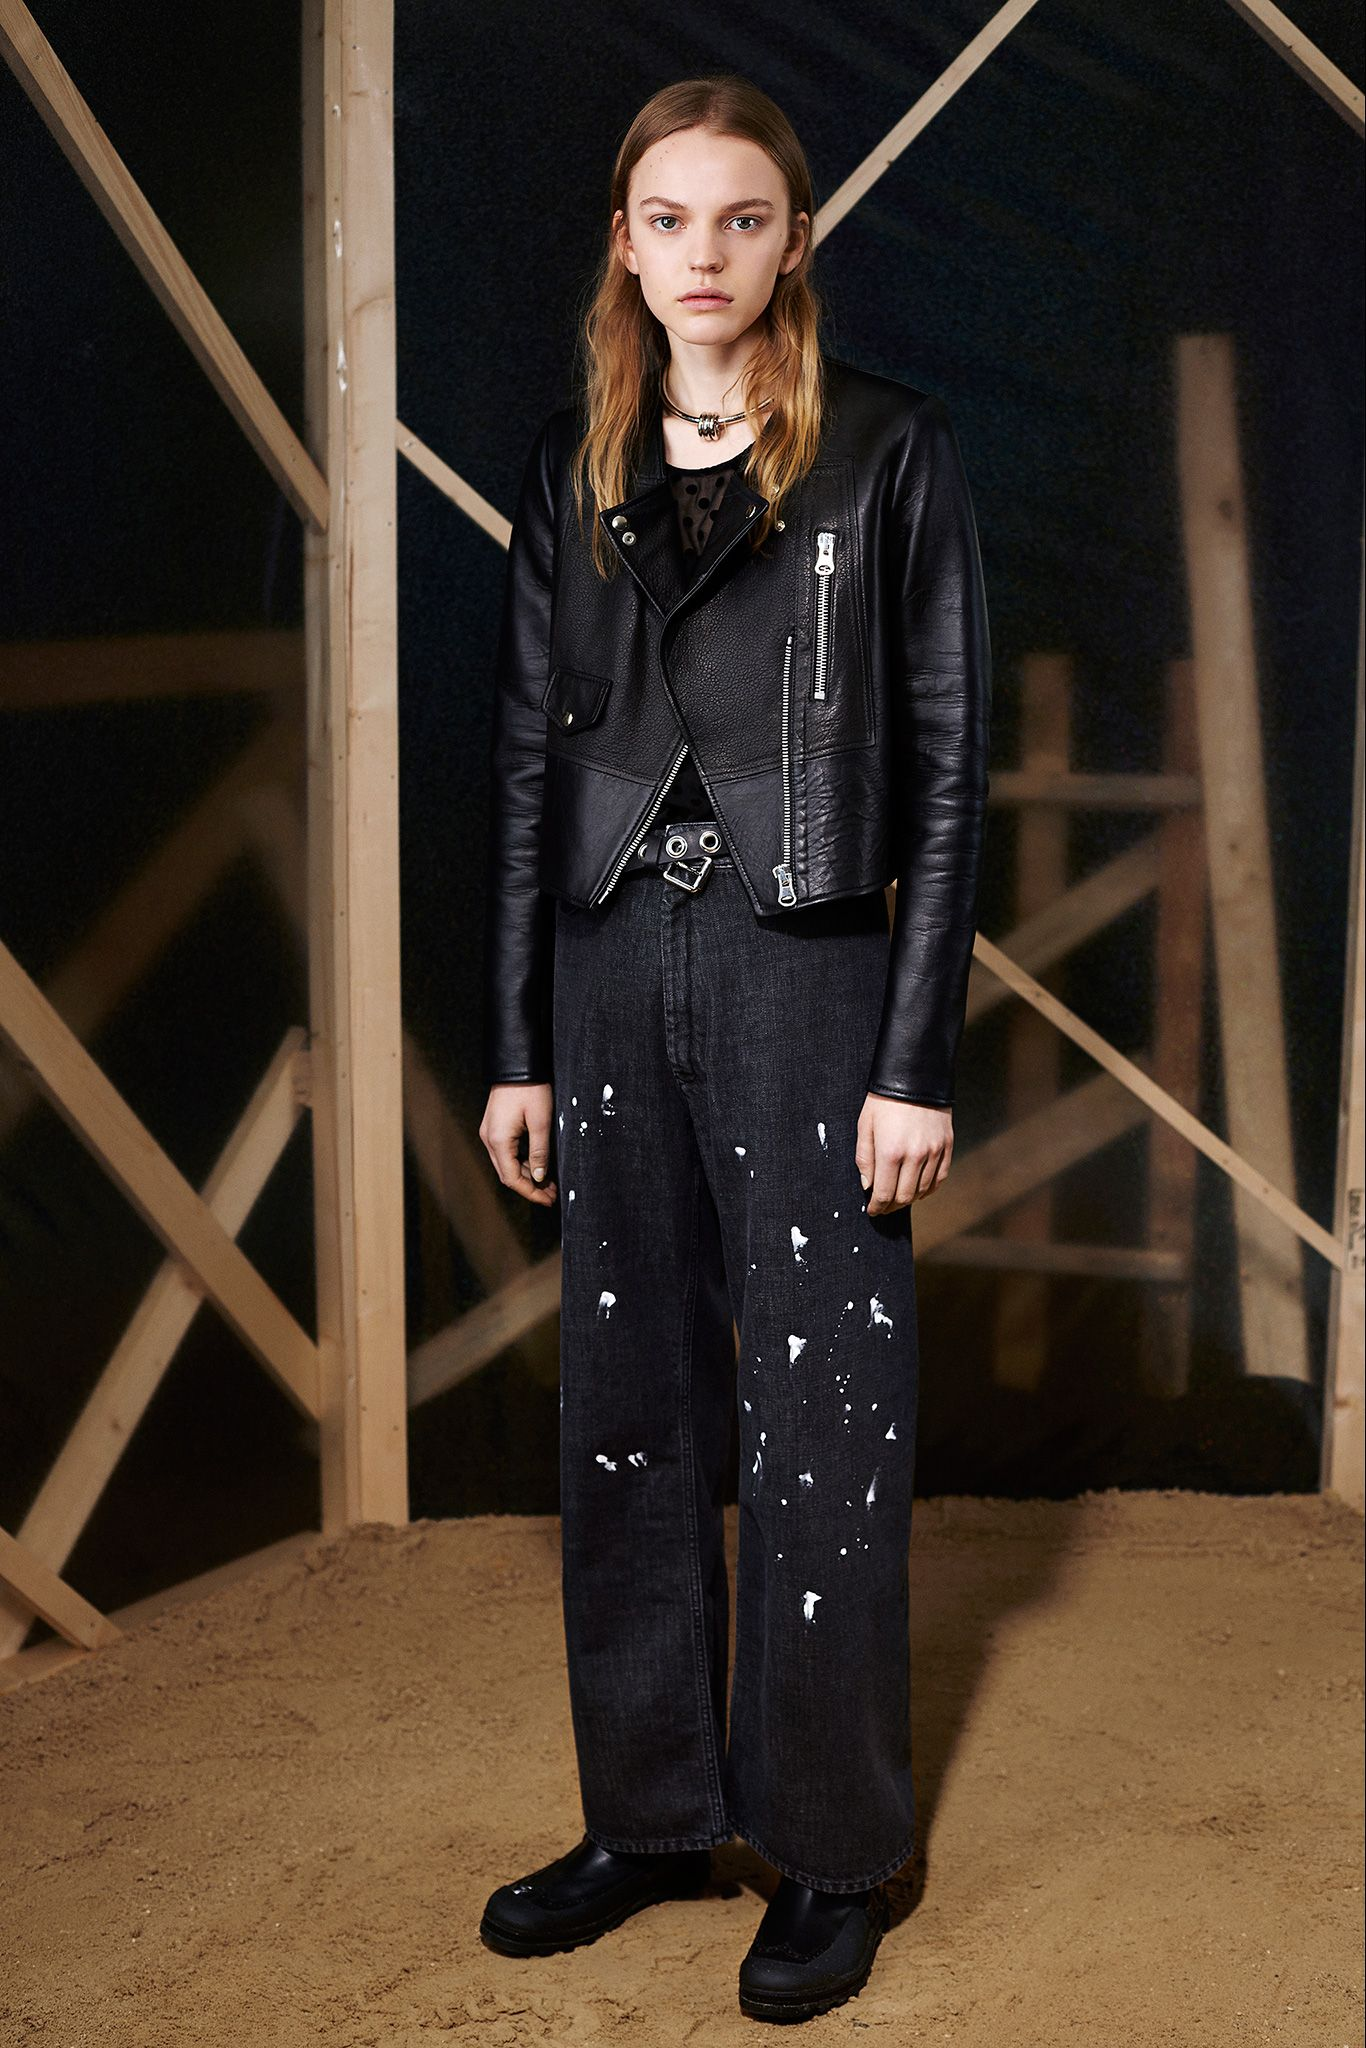 MM6 Maison Martin Margiela Pre-Fall 2015 Collection recommendations